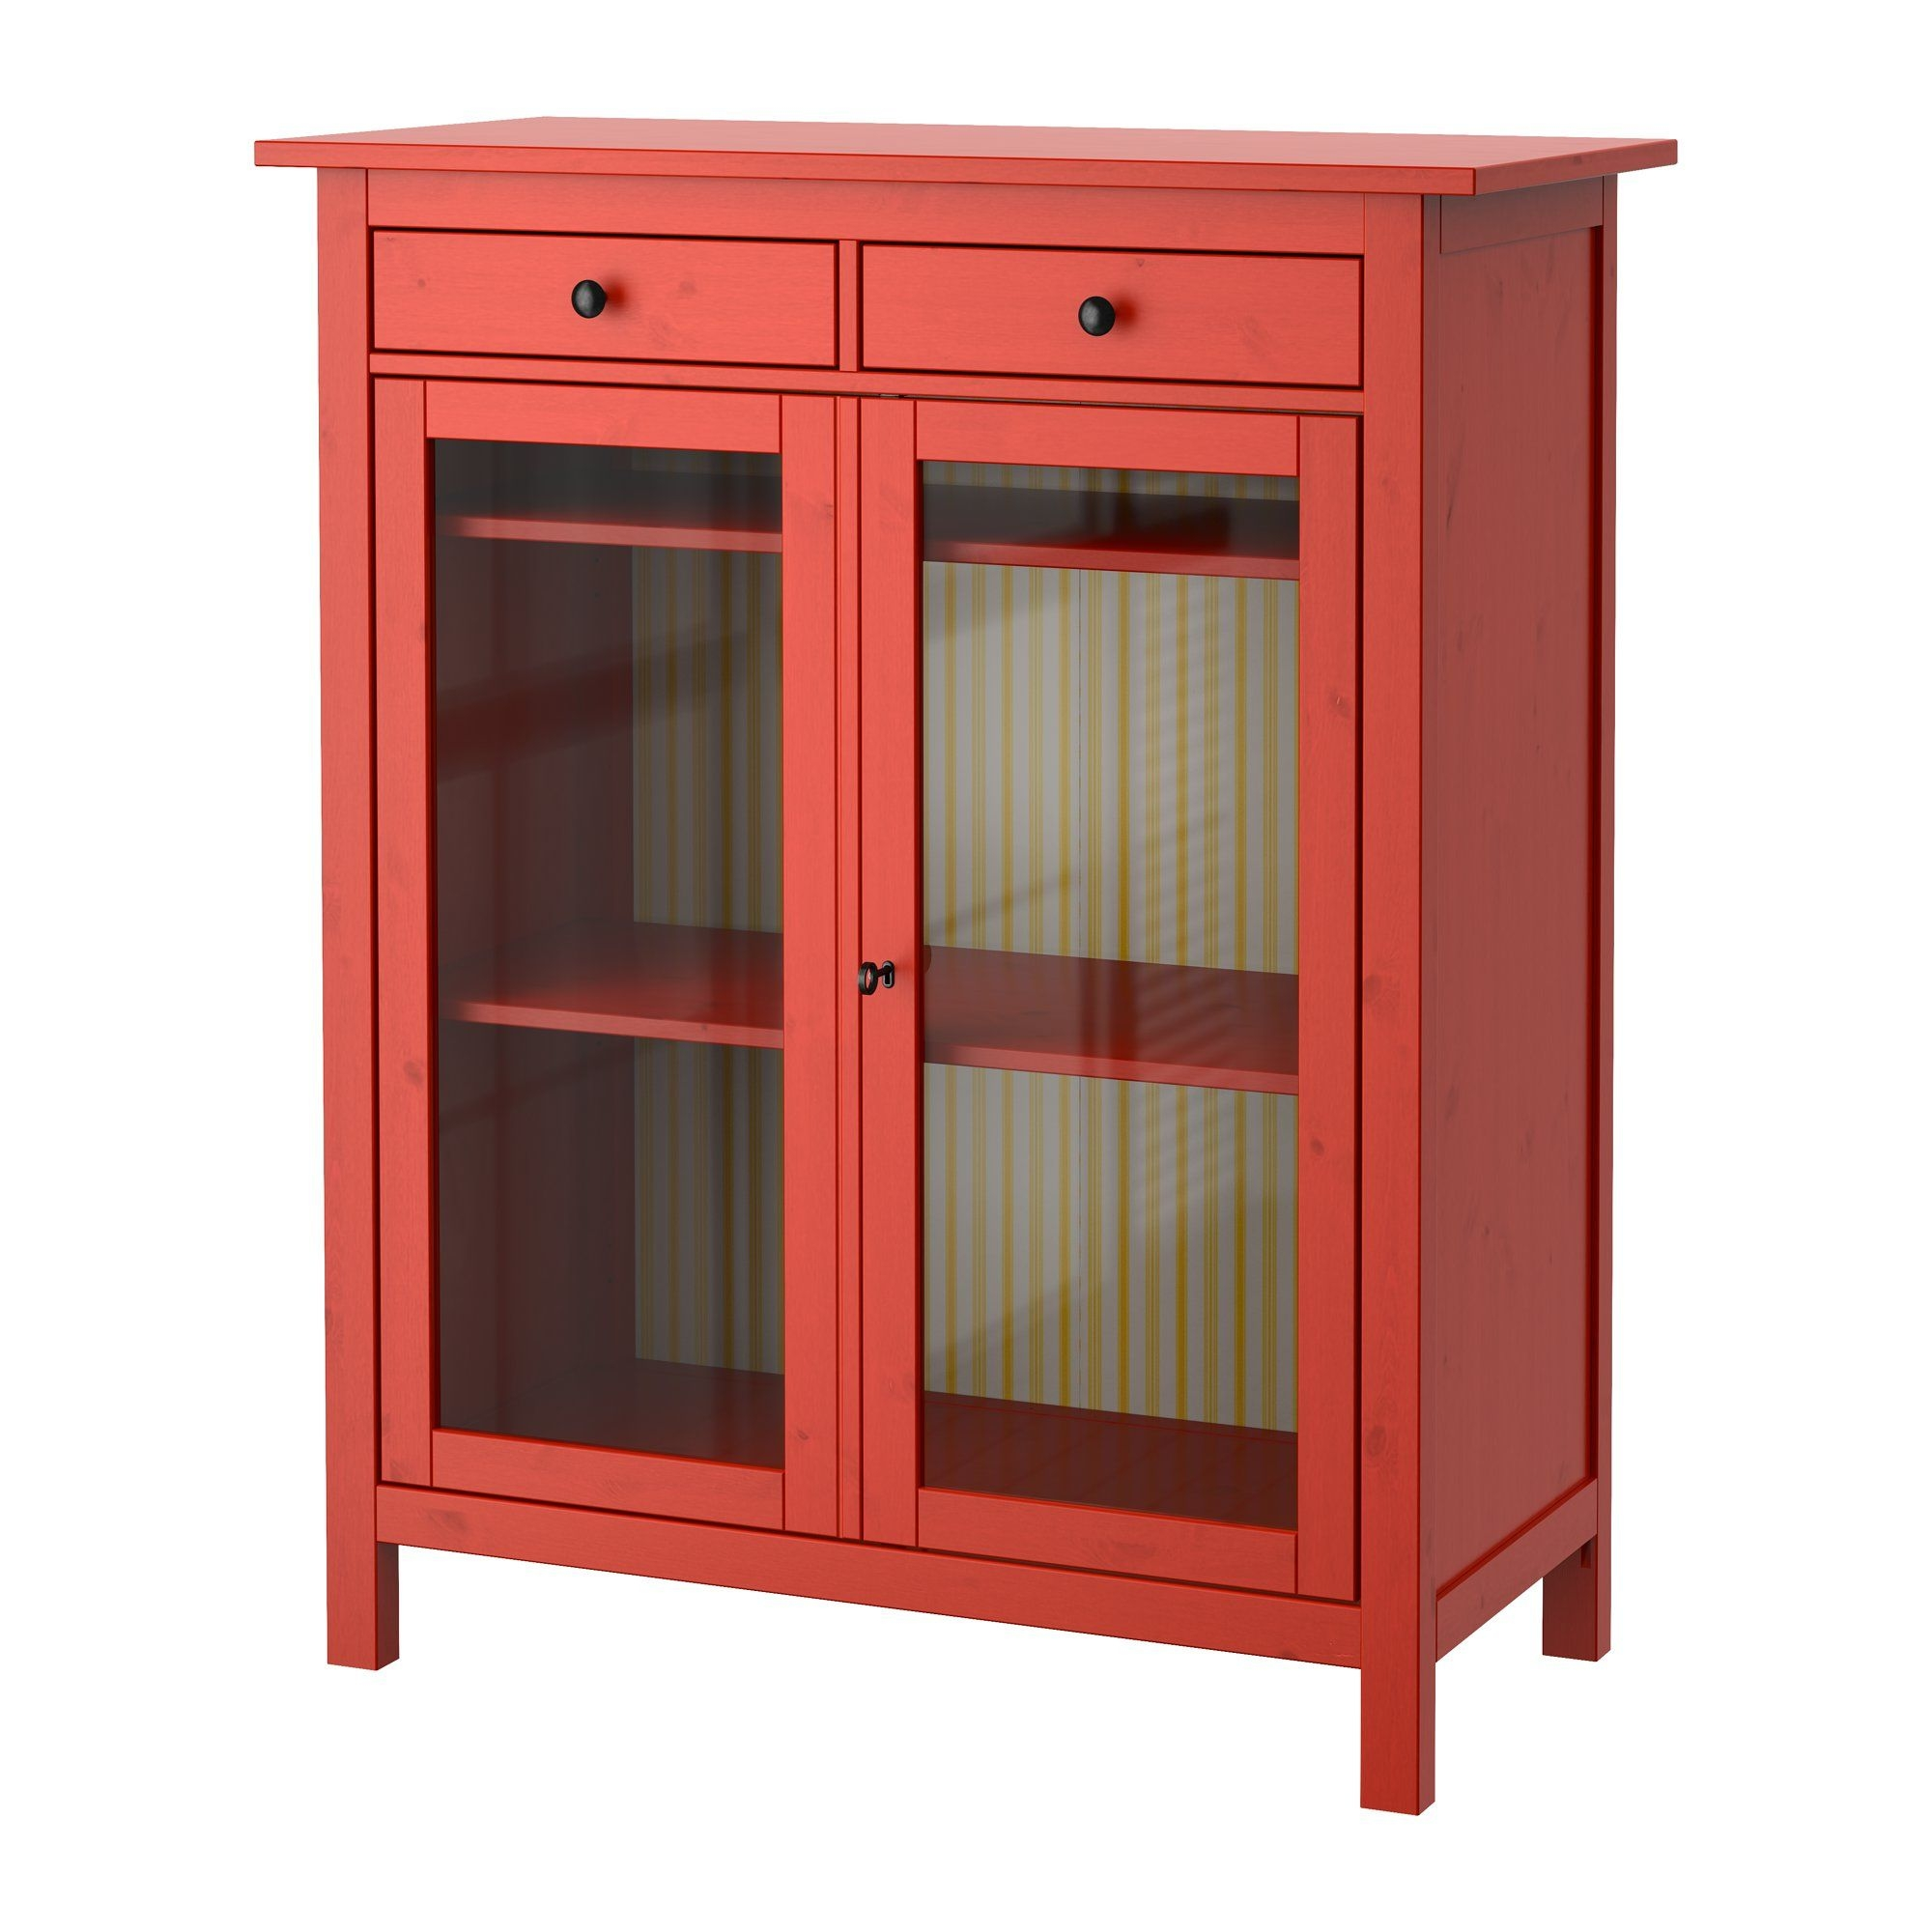 Superieur Hemnes Linen Cabinet For Sale